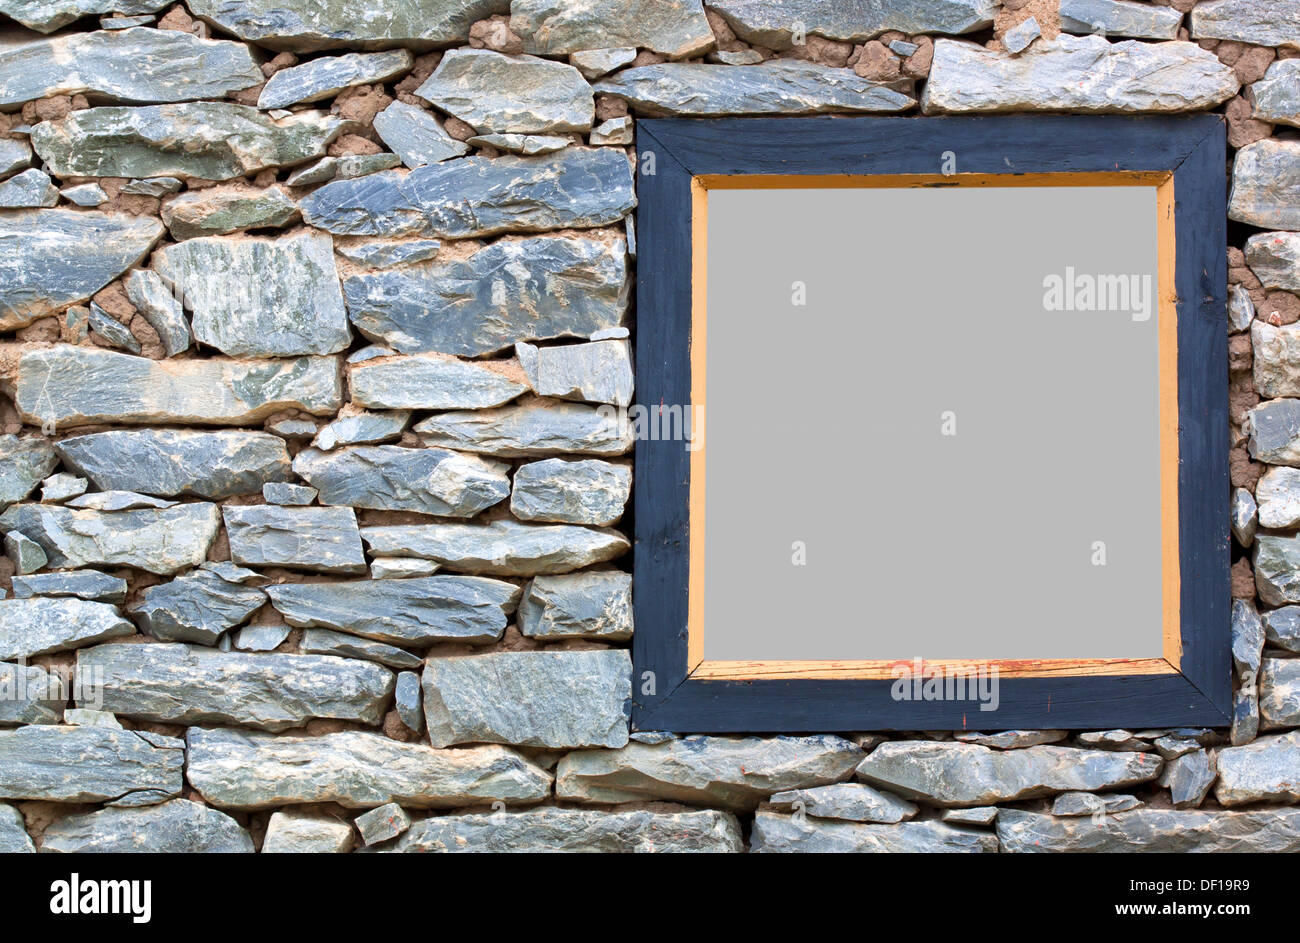 Old stone wall with a wood frame wall. - Stock Image